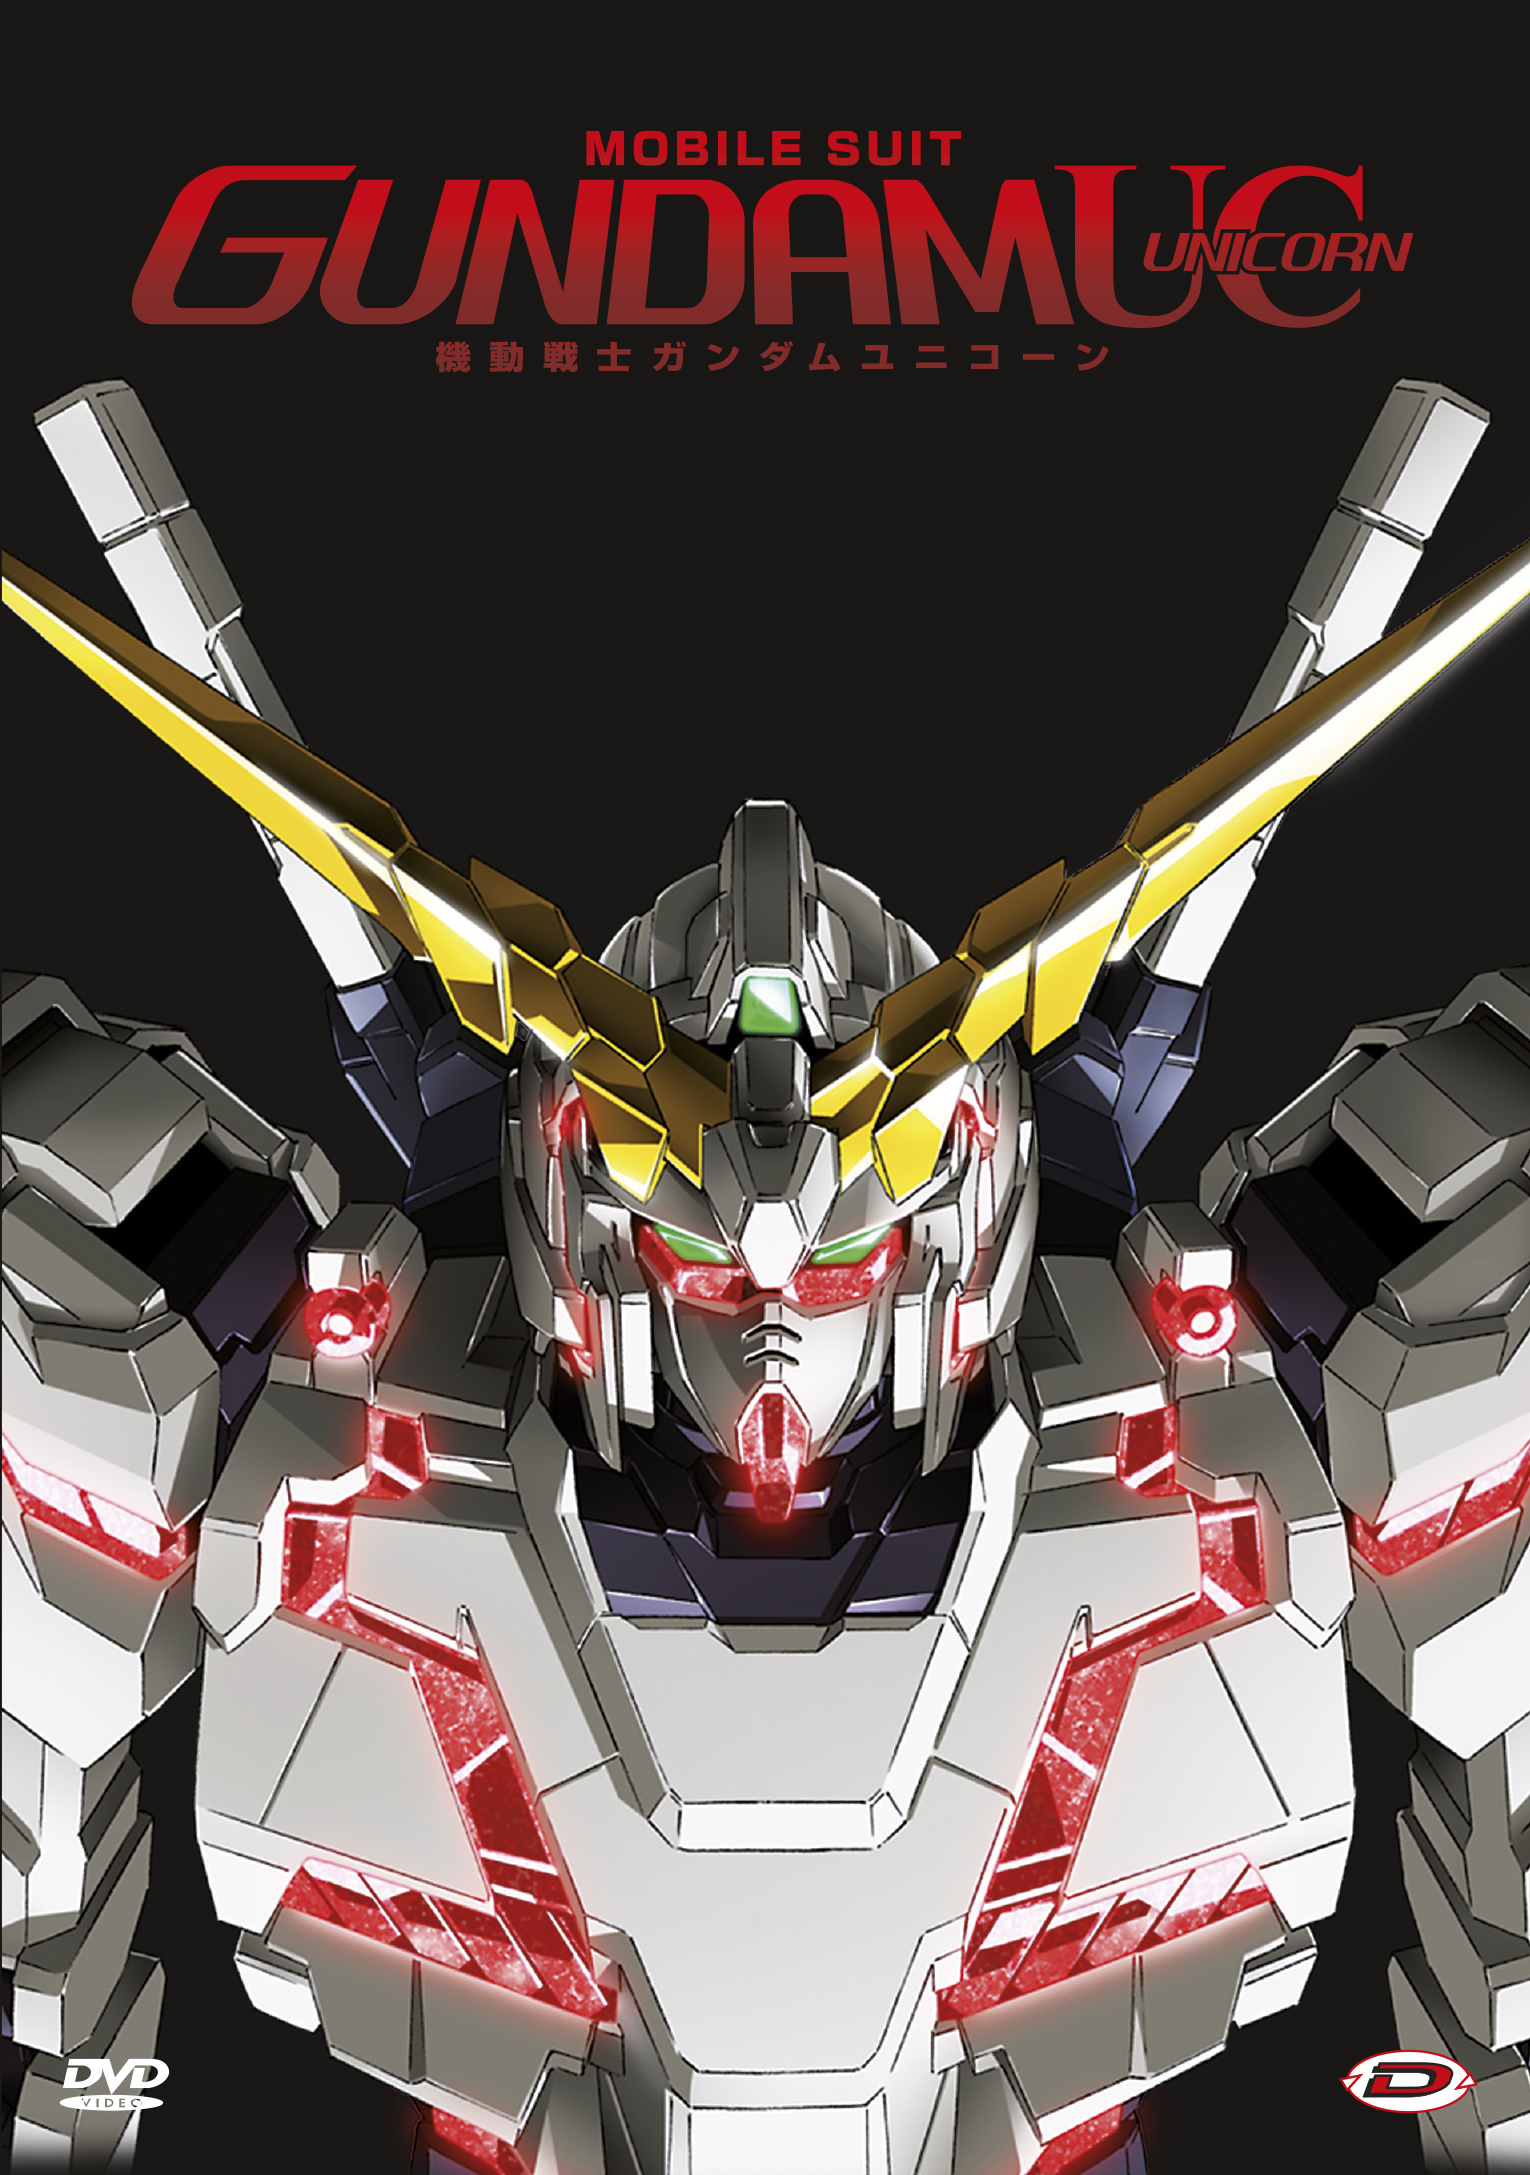 COF.MOBILE SUIT GUNDAM UNICORN - COMPLETE OAV BOX-SET (STANDARD